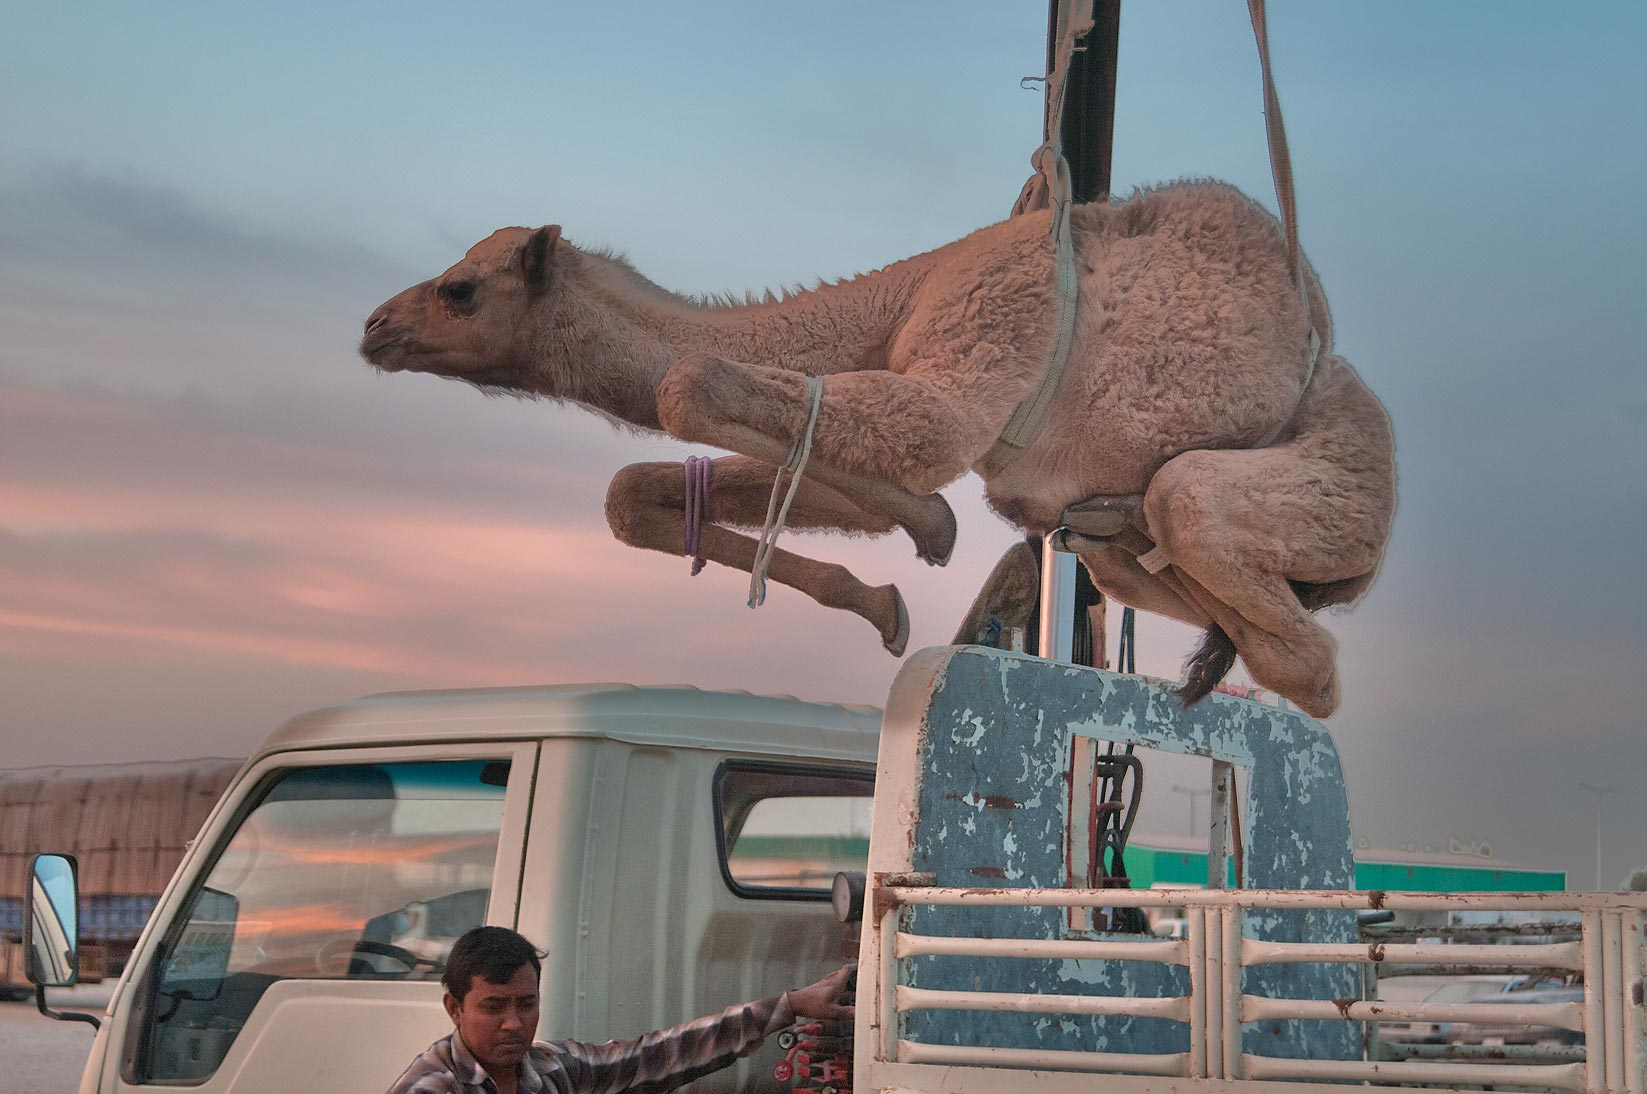 Worker lifting a camel by a hydraulic crane in Camel Market (Souq). Doha, Qatar